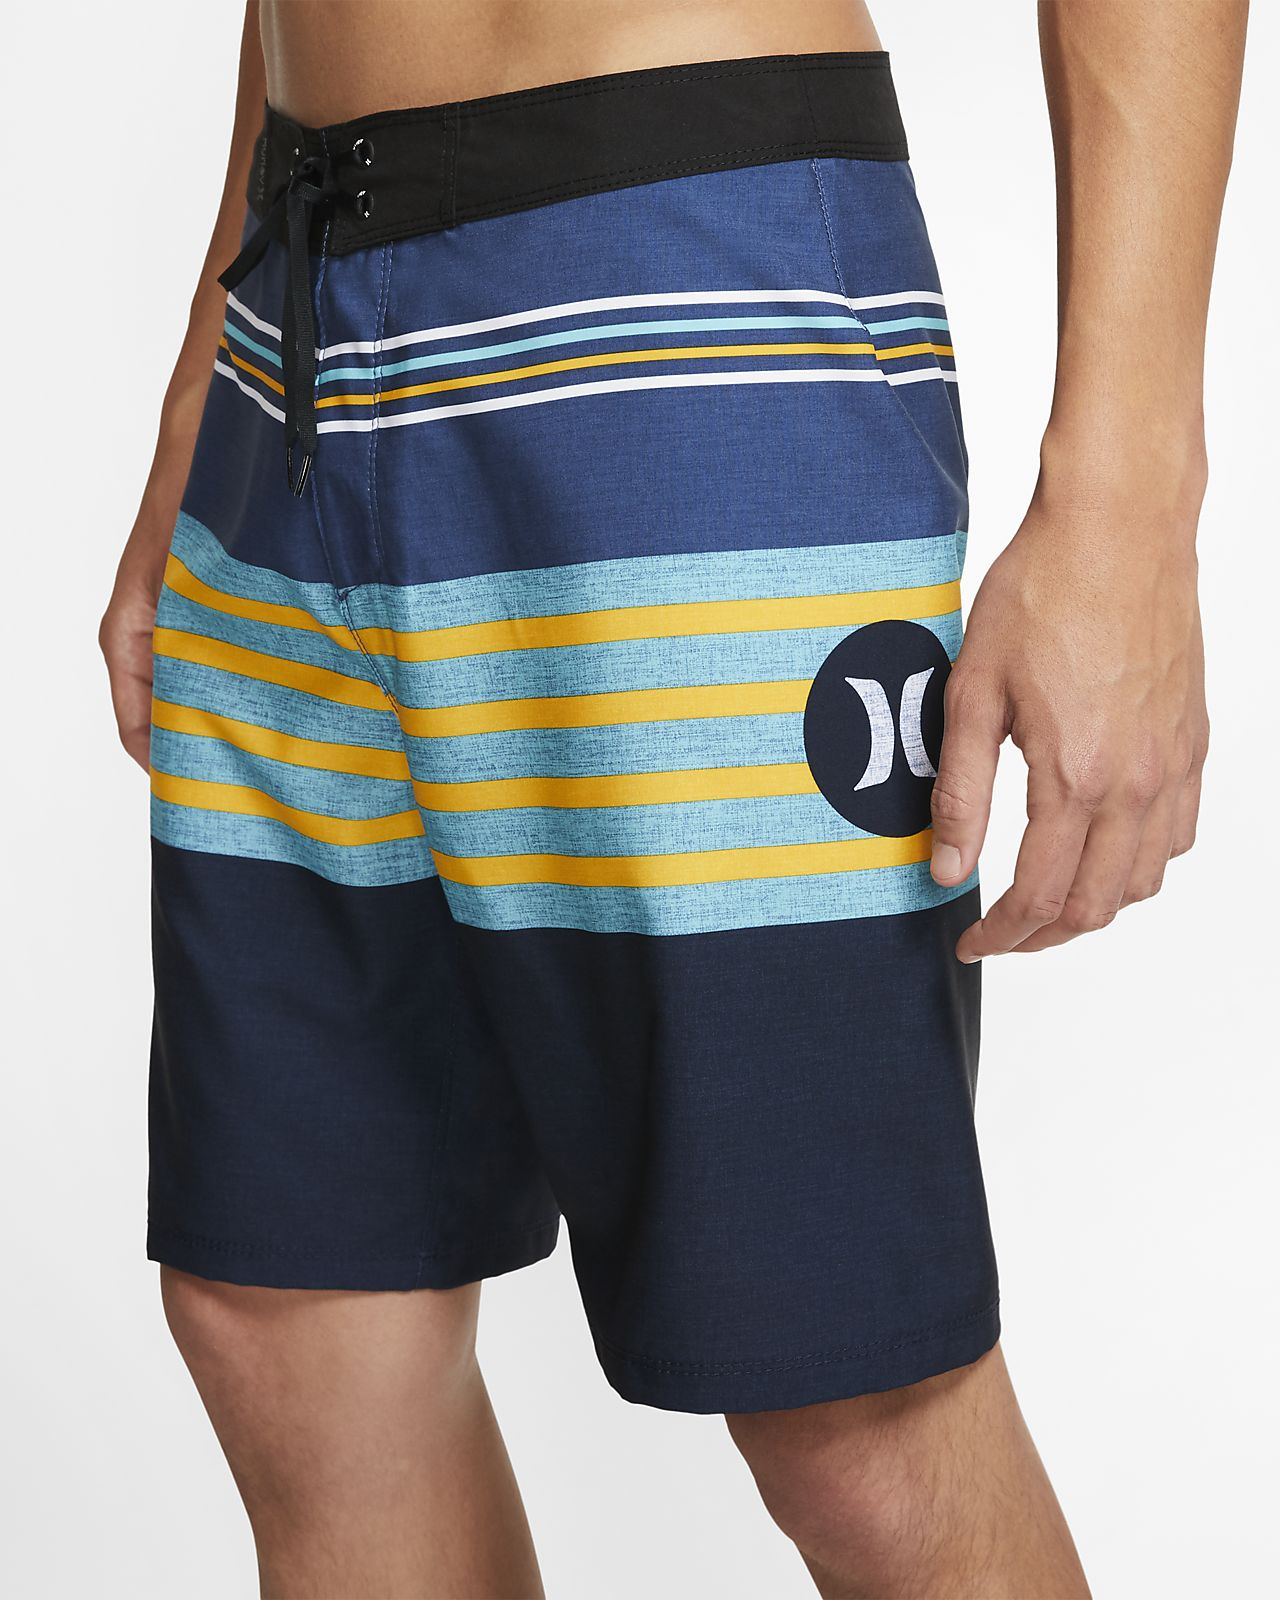 Hurley Outrigger Men's 51cm (approx.) Boardshorts